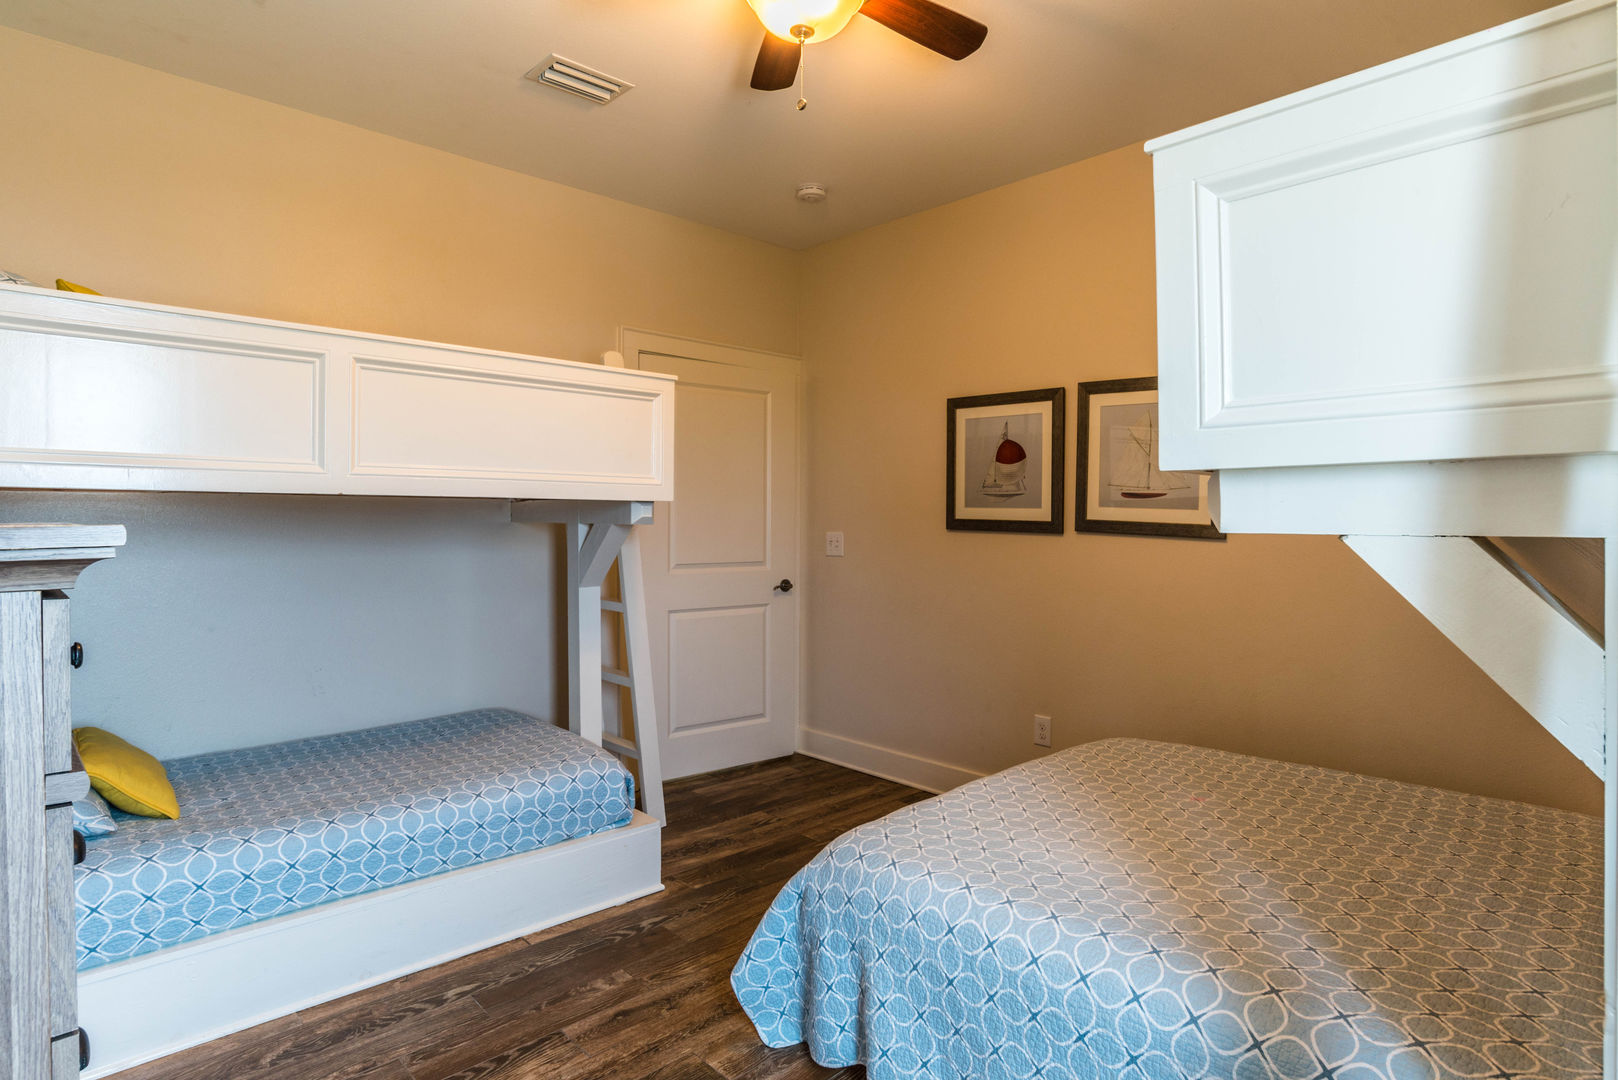 Two Sets of Bunk Beds in This Additional Sleeping Room